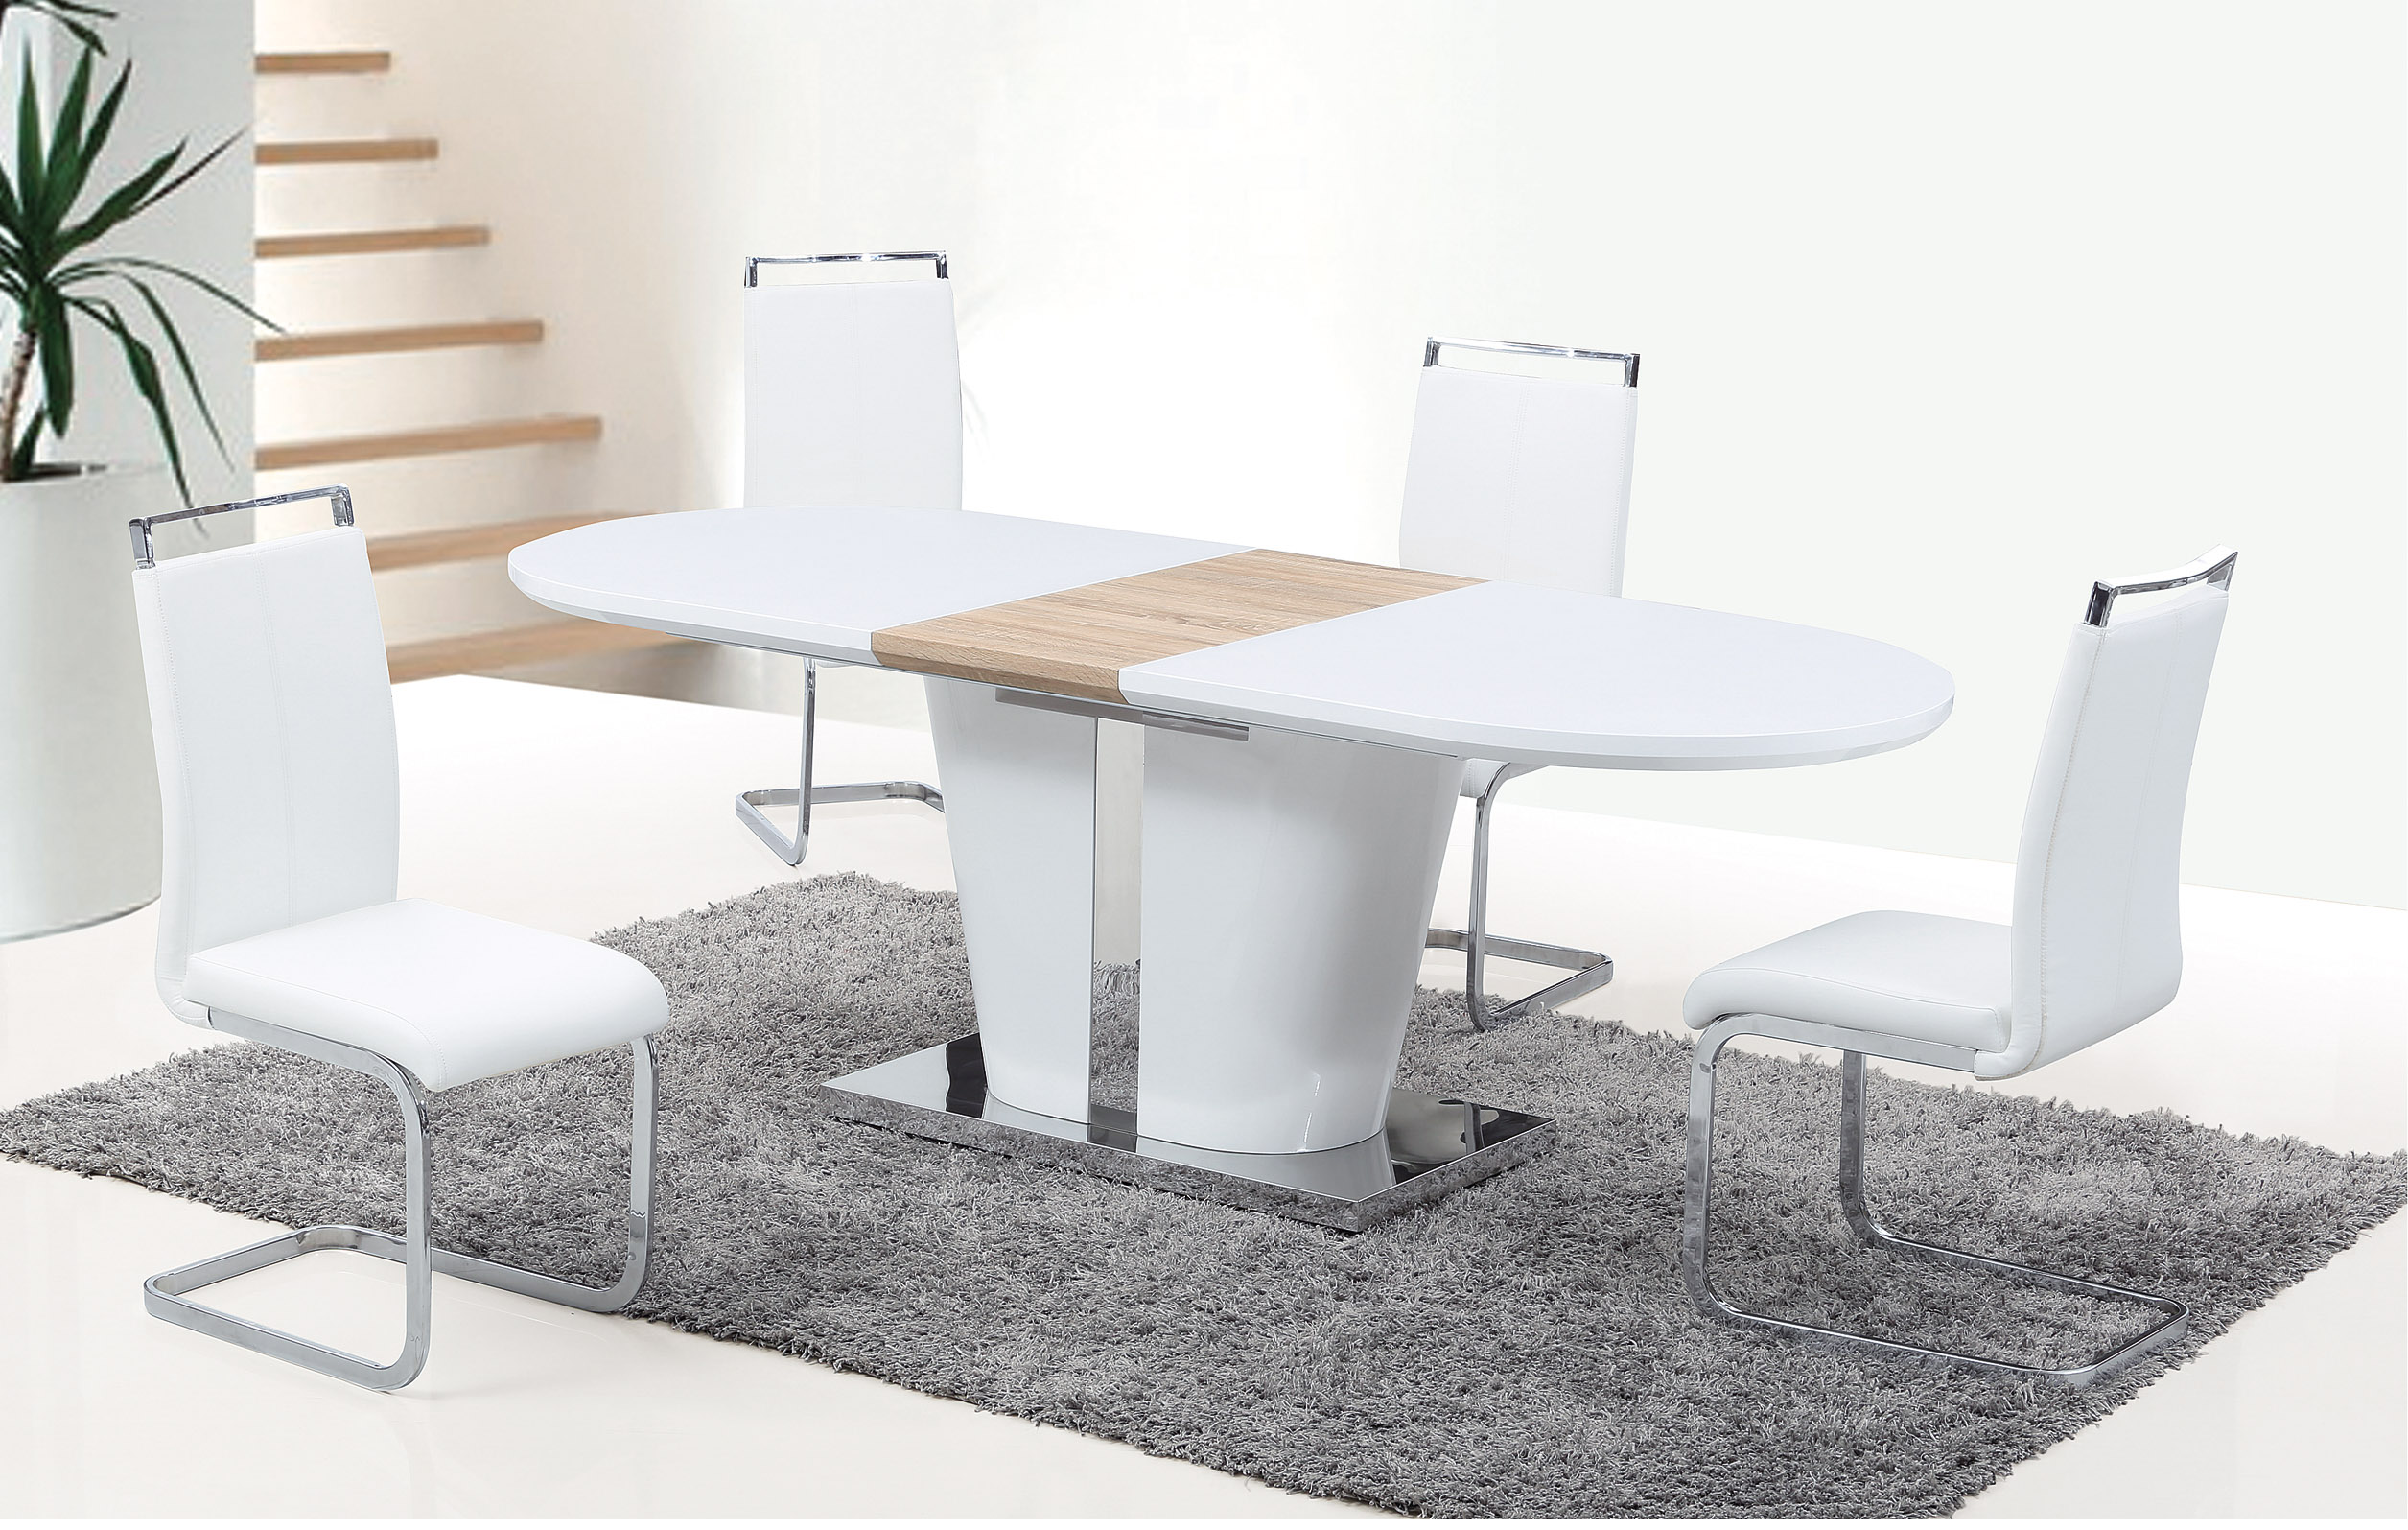 DININGTABLE-GL 4917 RIGA